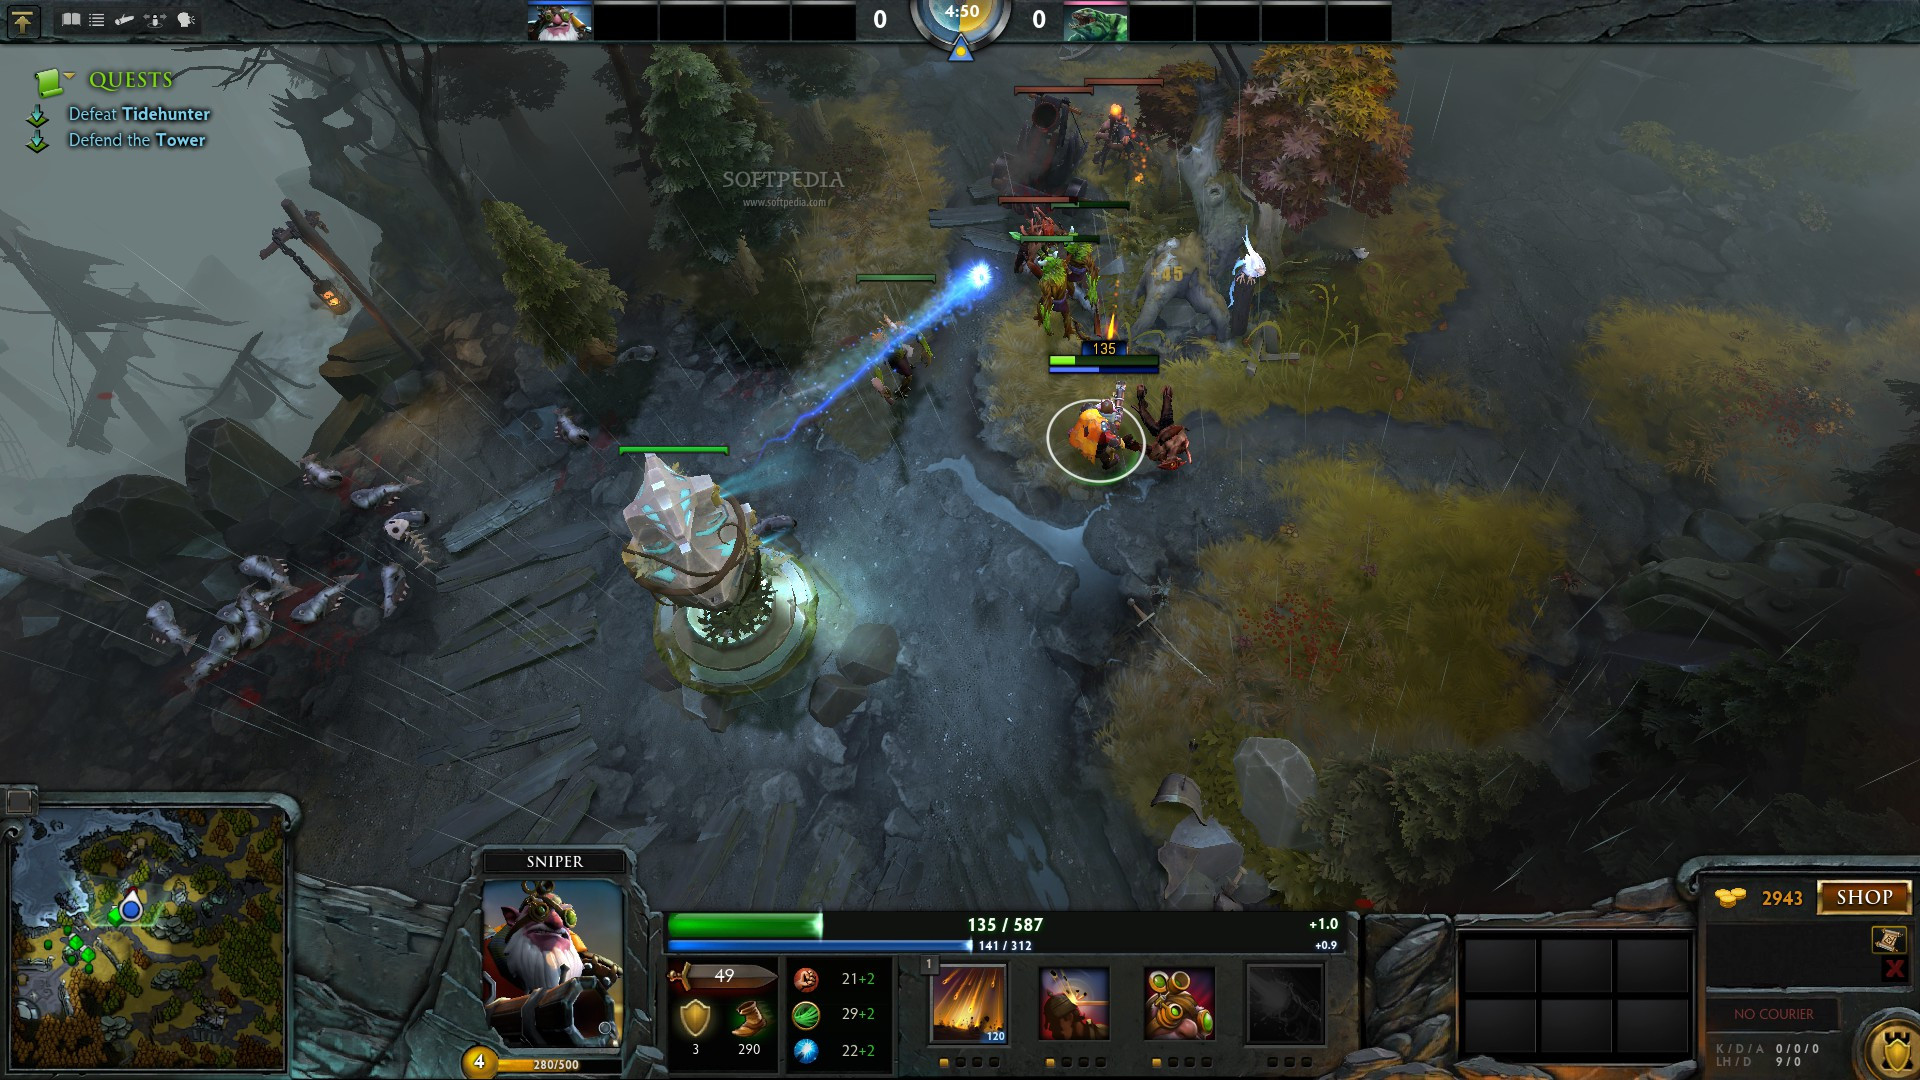 Dota 2 adds 1v1 Practice new Team Matchmaking